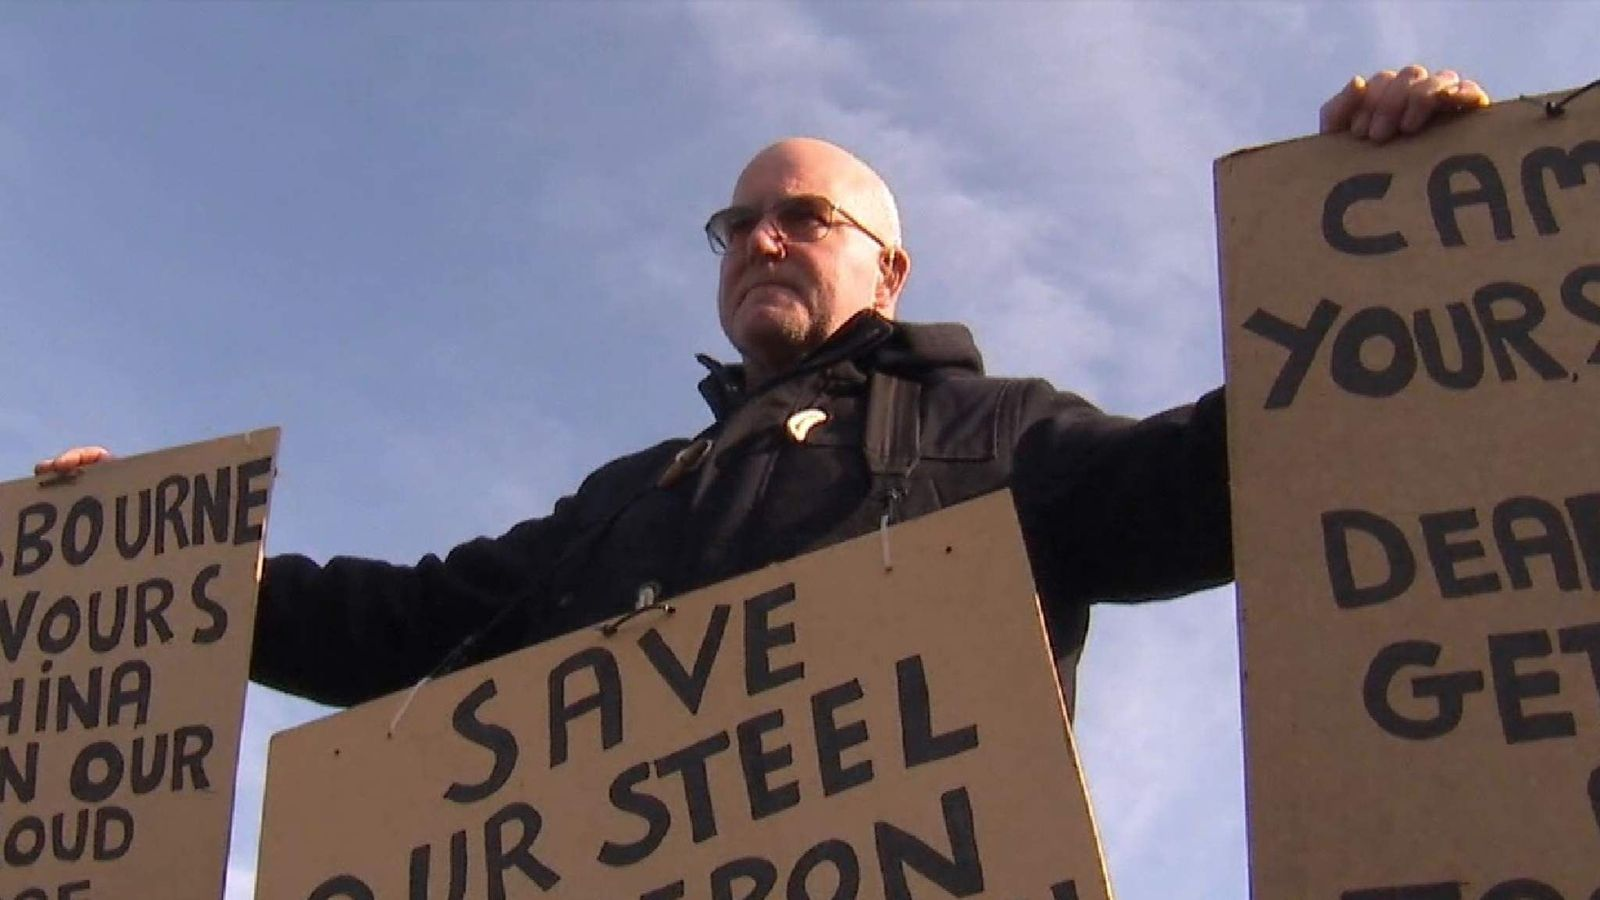 Worker protesting against job losses at Tata steel works Scunthorpe